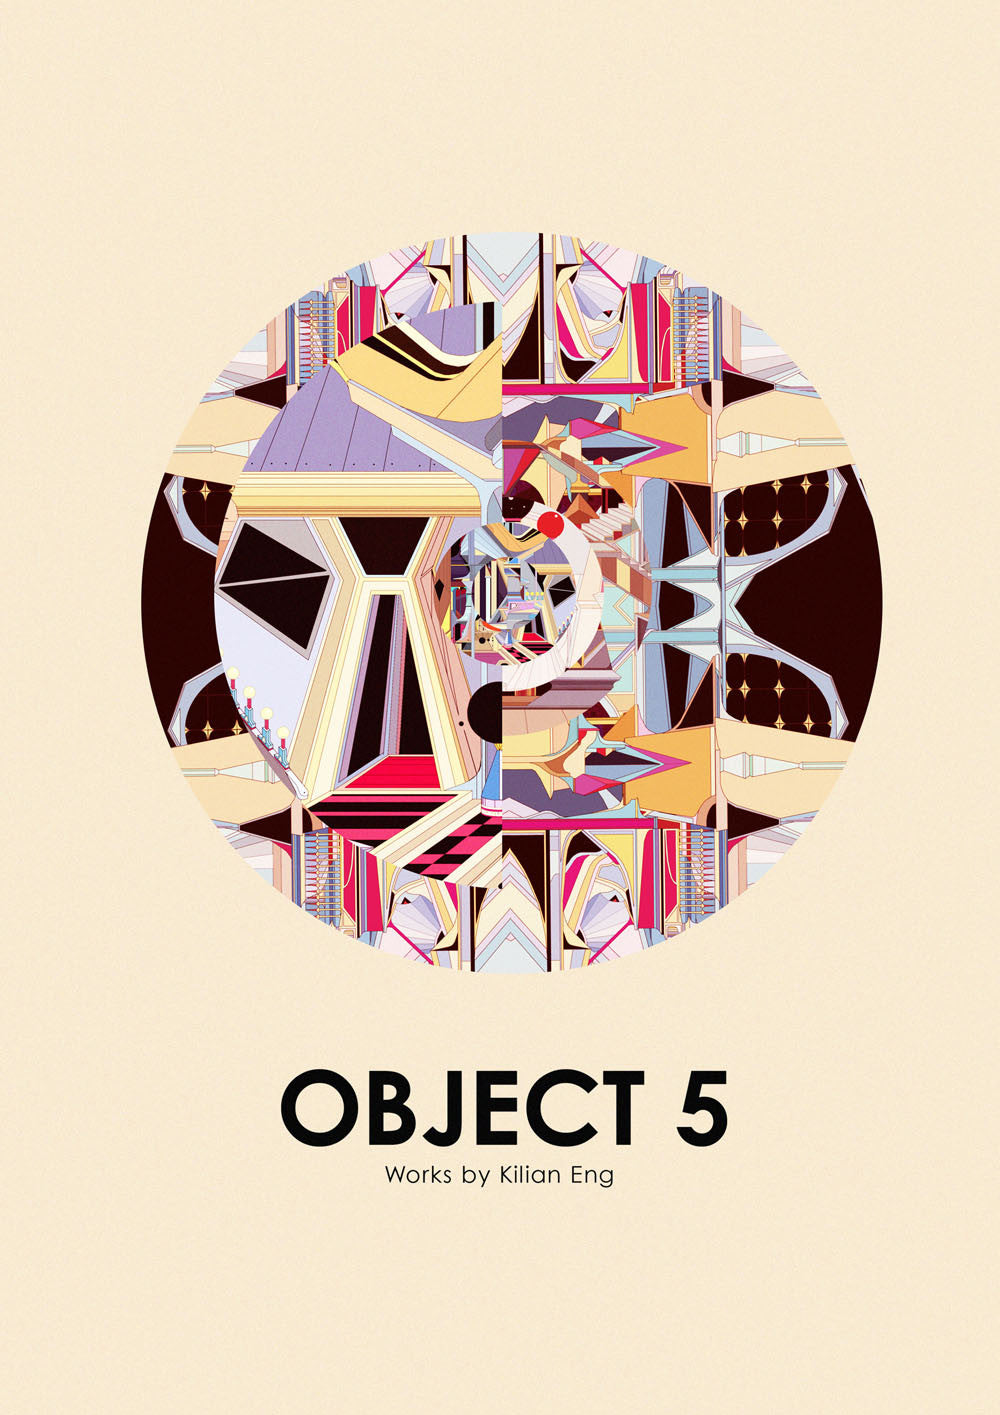 Object 5 by Kilian Eng